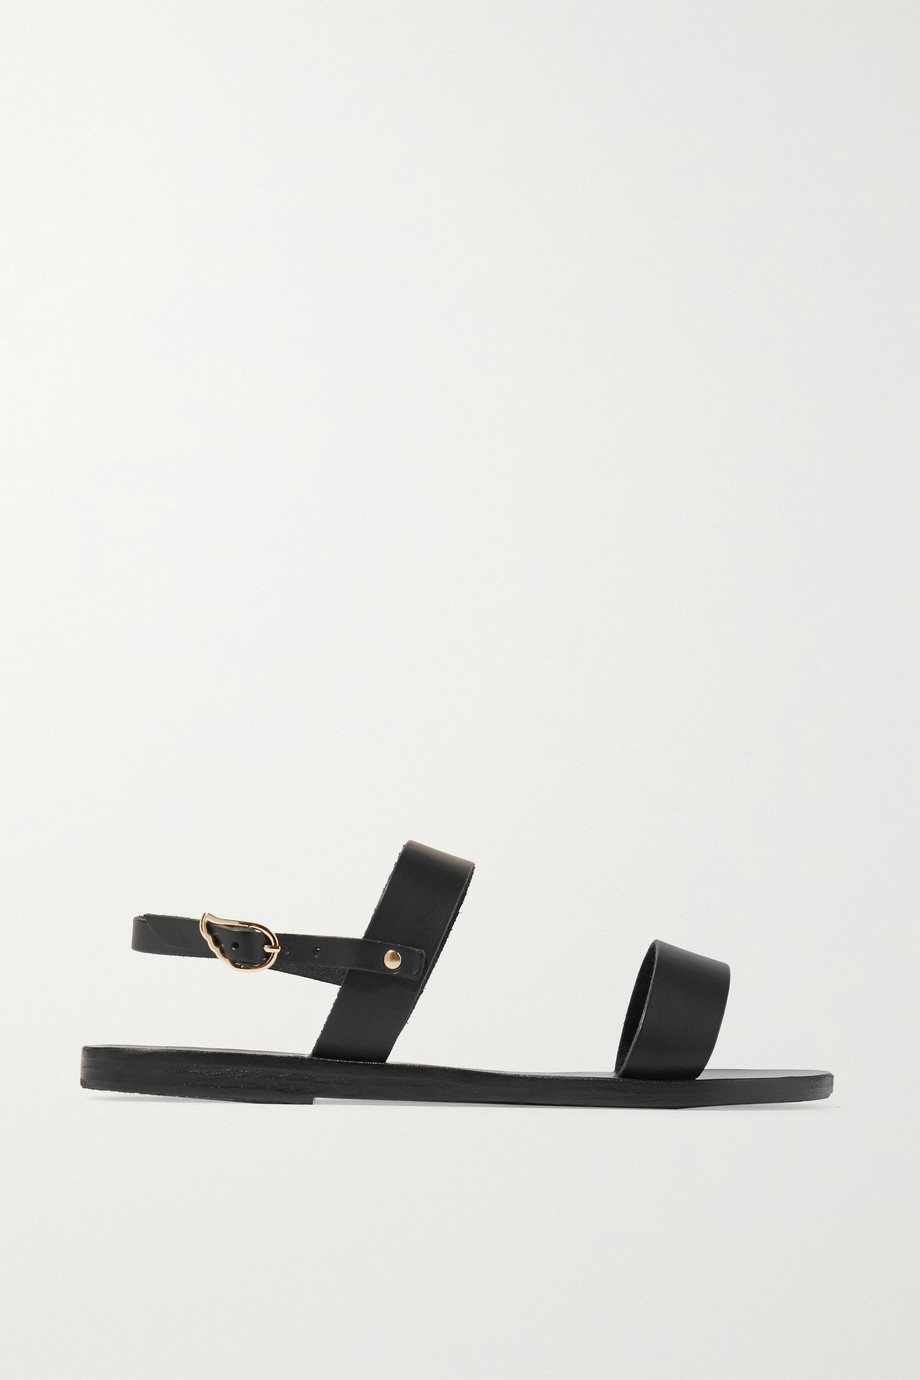 Clio Leather Sandals, Ancient Greek Sandals, Black, Women's US Size: 10.5, Size: 41